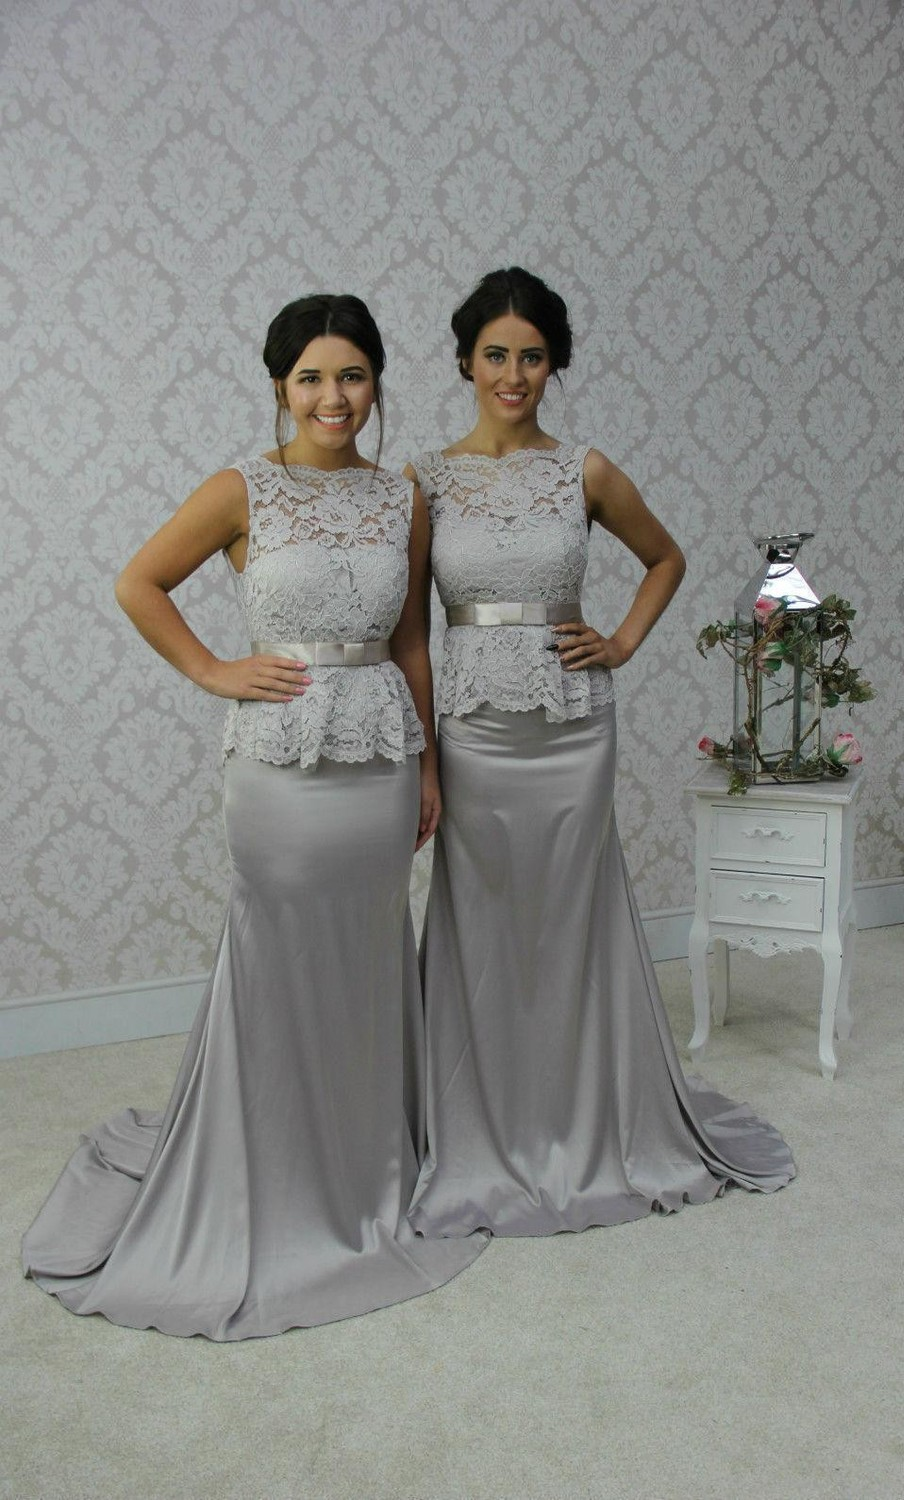 Hot Silver Bridesmaid Dresses 2015 Bateau Neck Mermaid Satin Sleeveless with Ribbon Court Train Backless Party Gowns Custom Made in Bridesmaid Dresses from Weddings Events